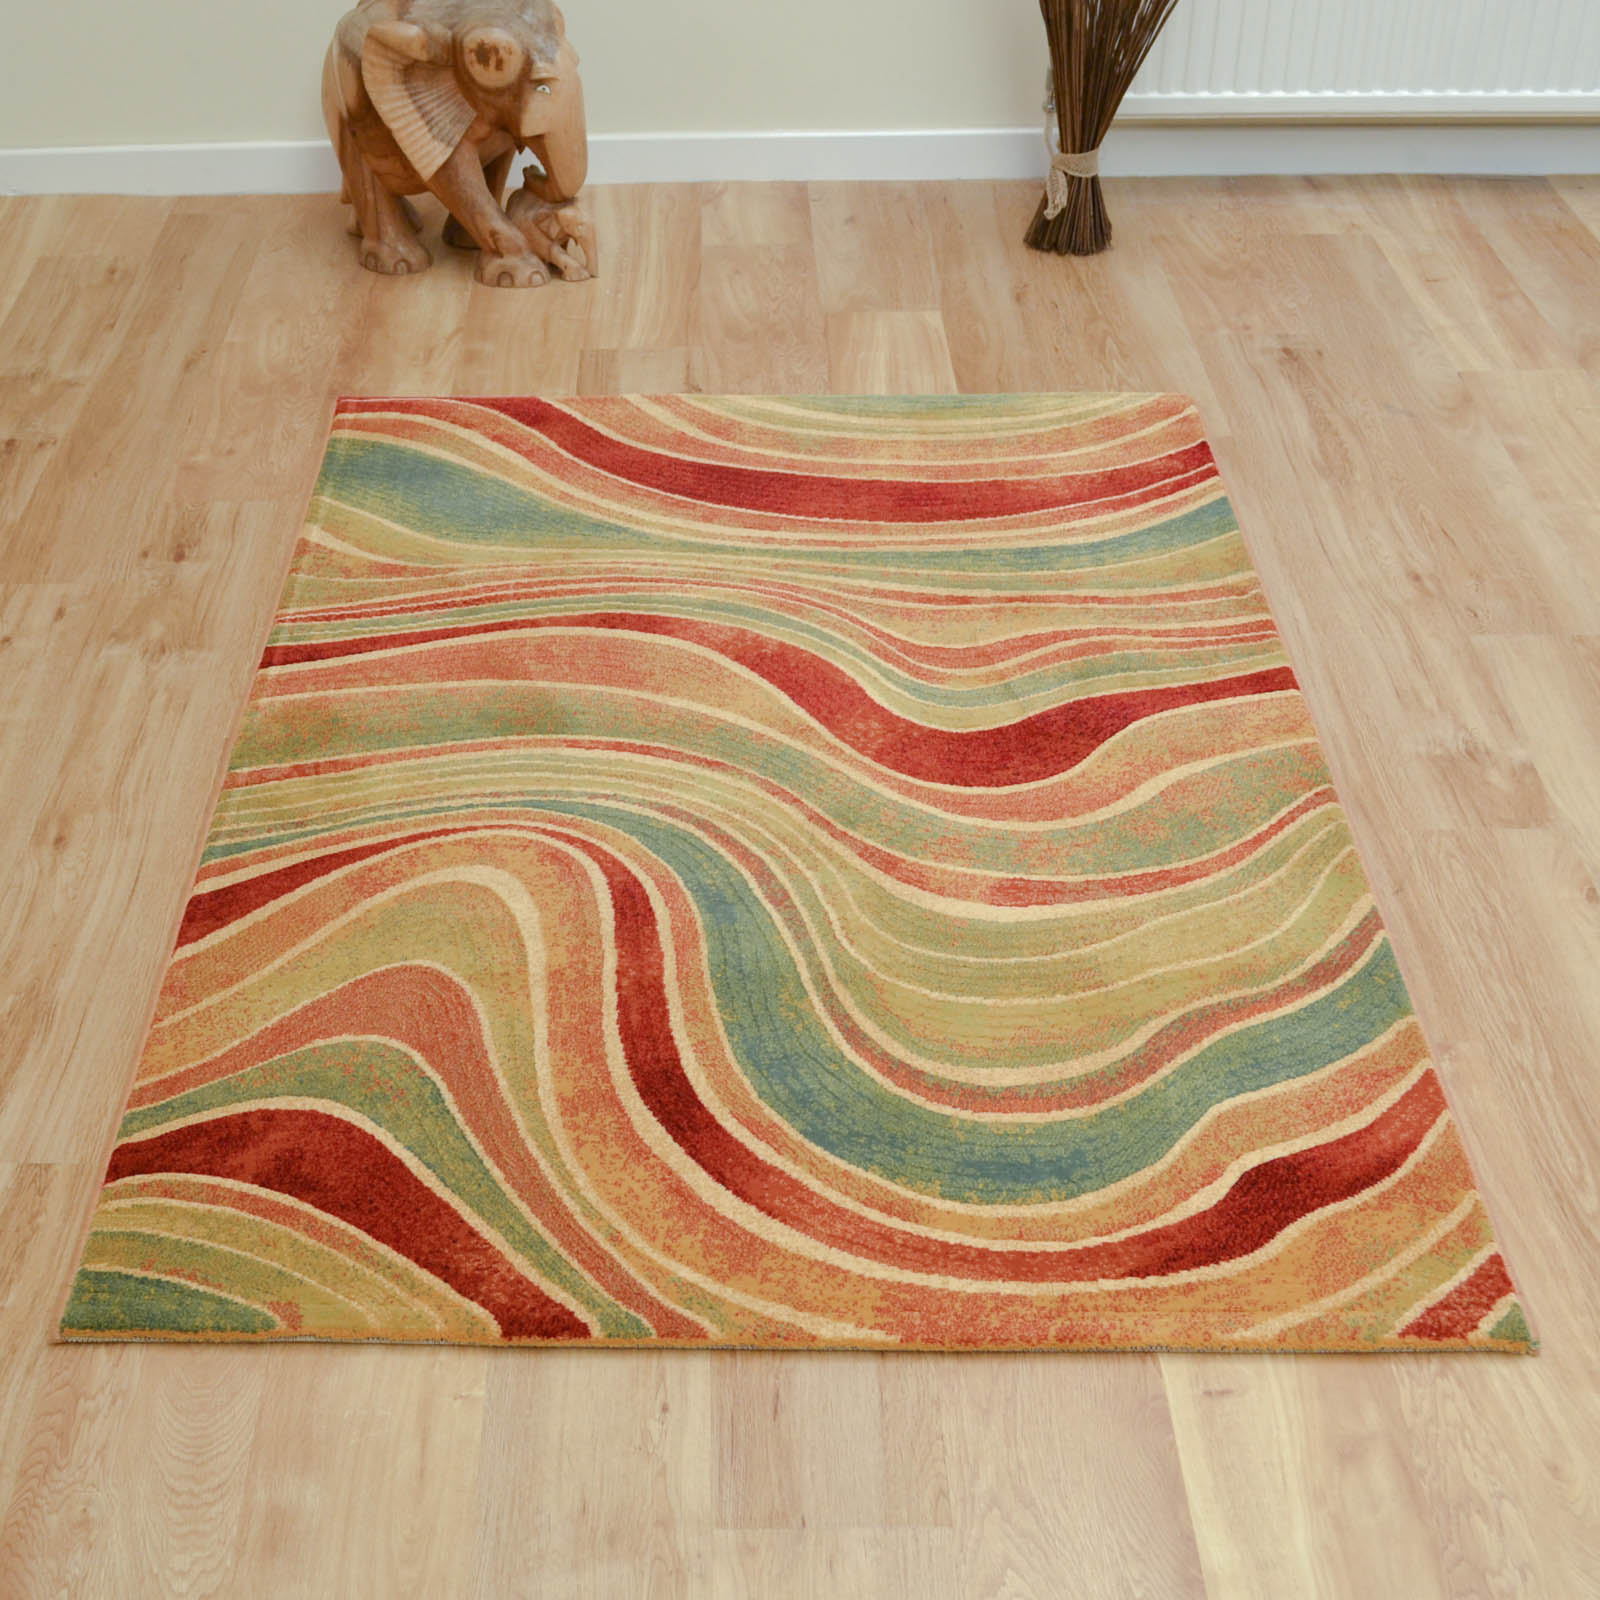 Galleria Rugs 68141 9090 Rust and Blue Swirl